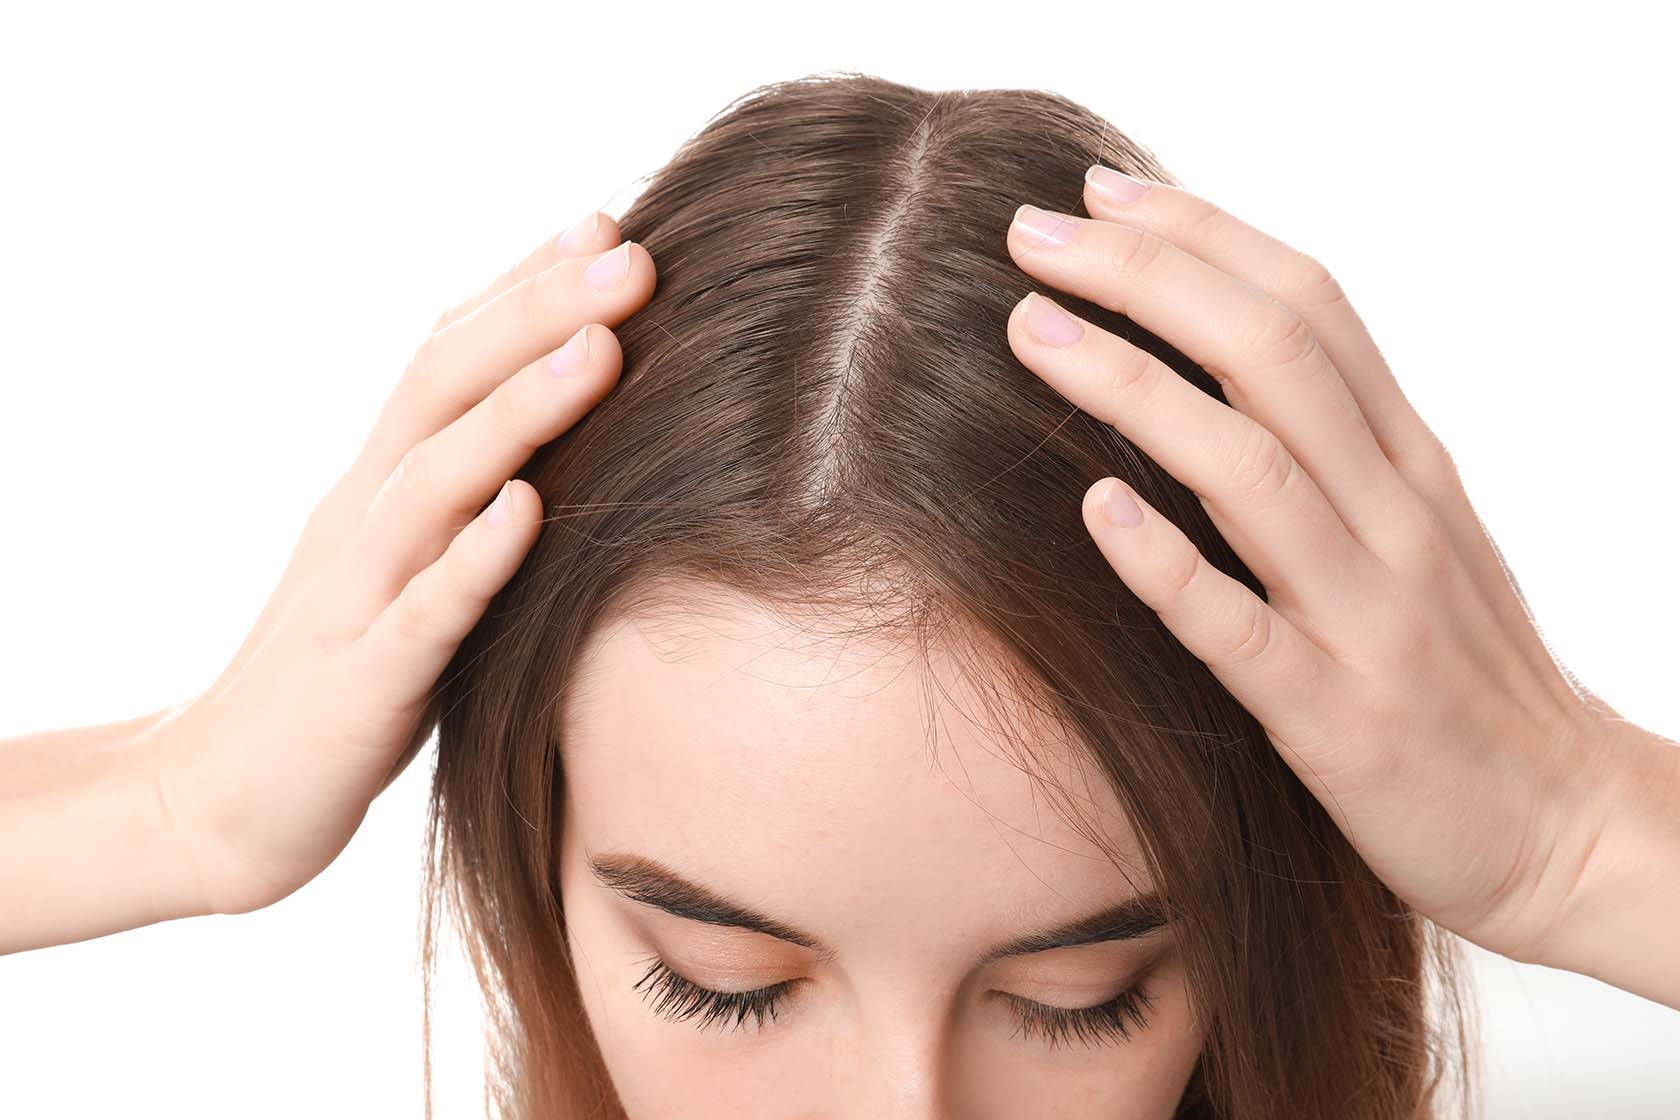 Thyroid Issues and Hair Loss